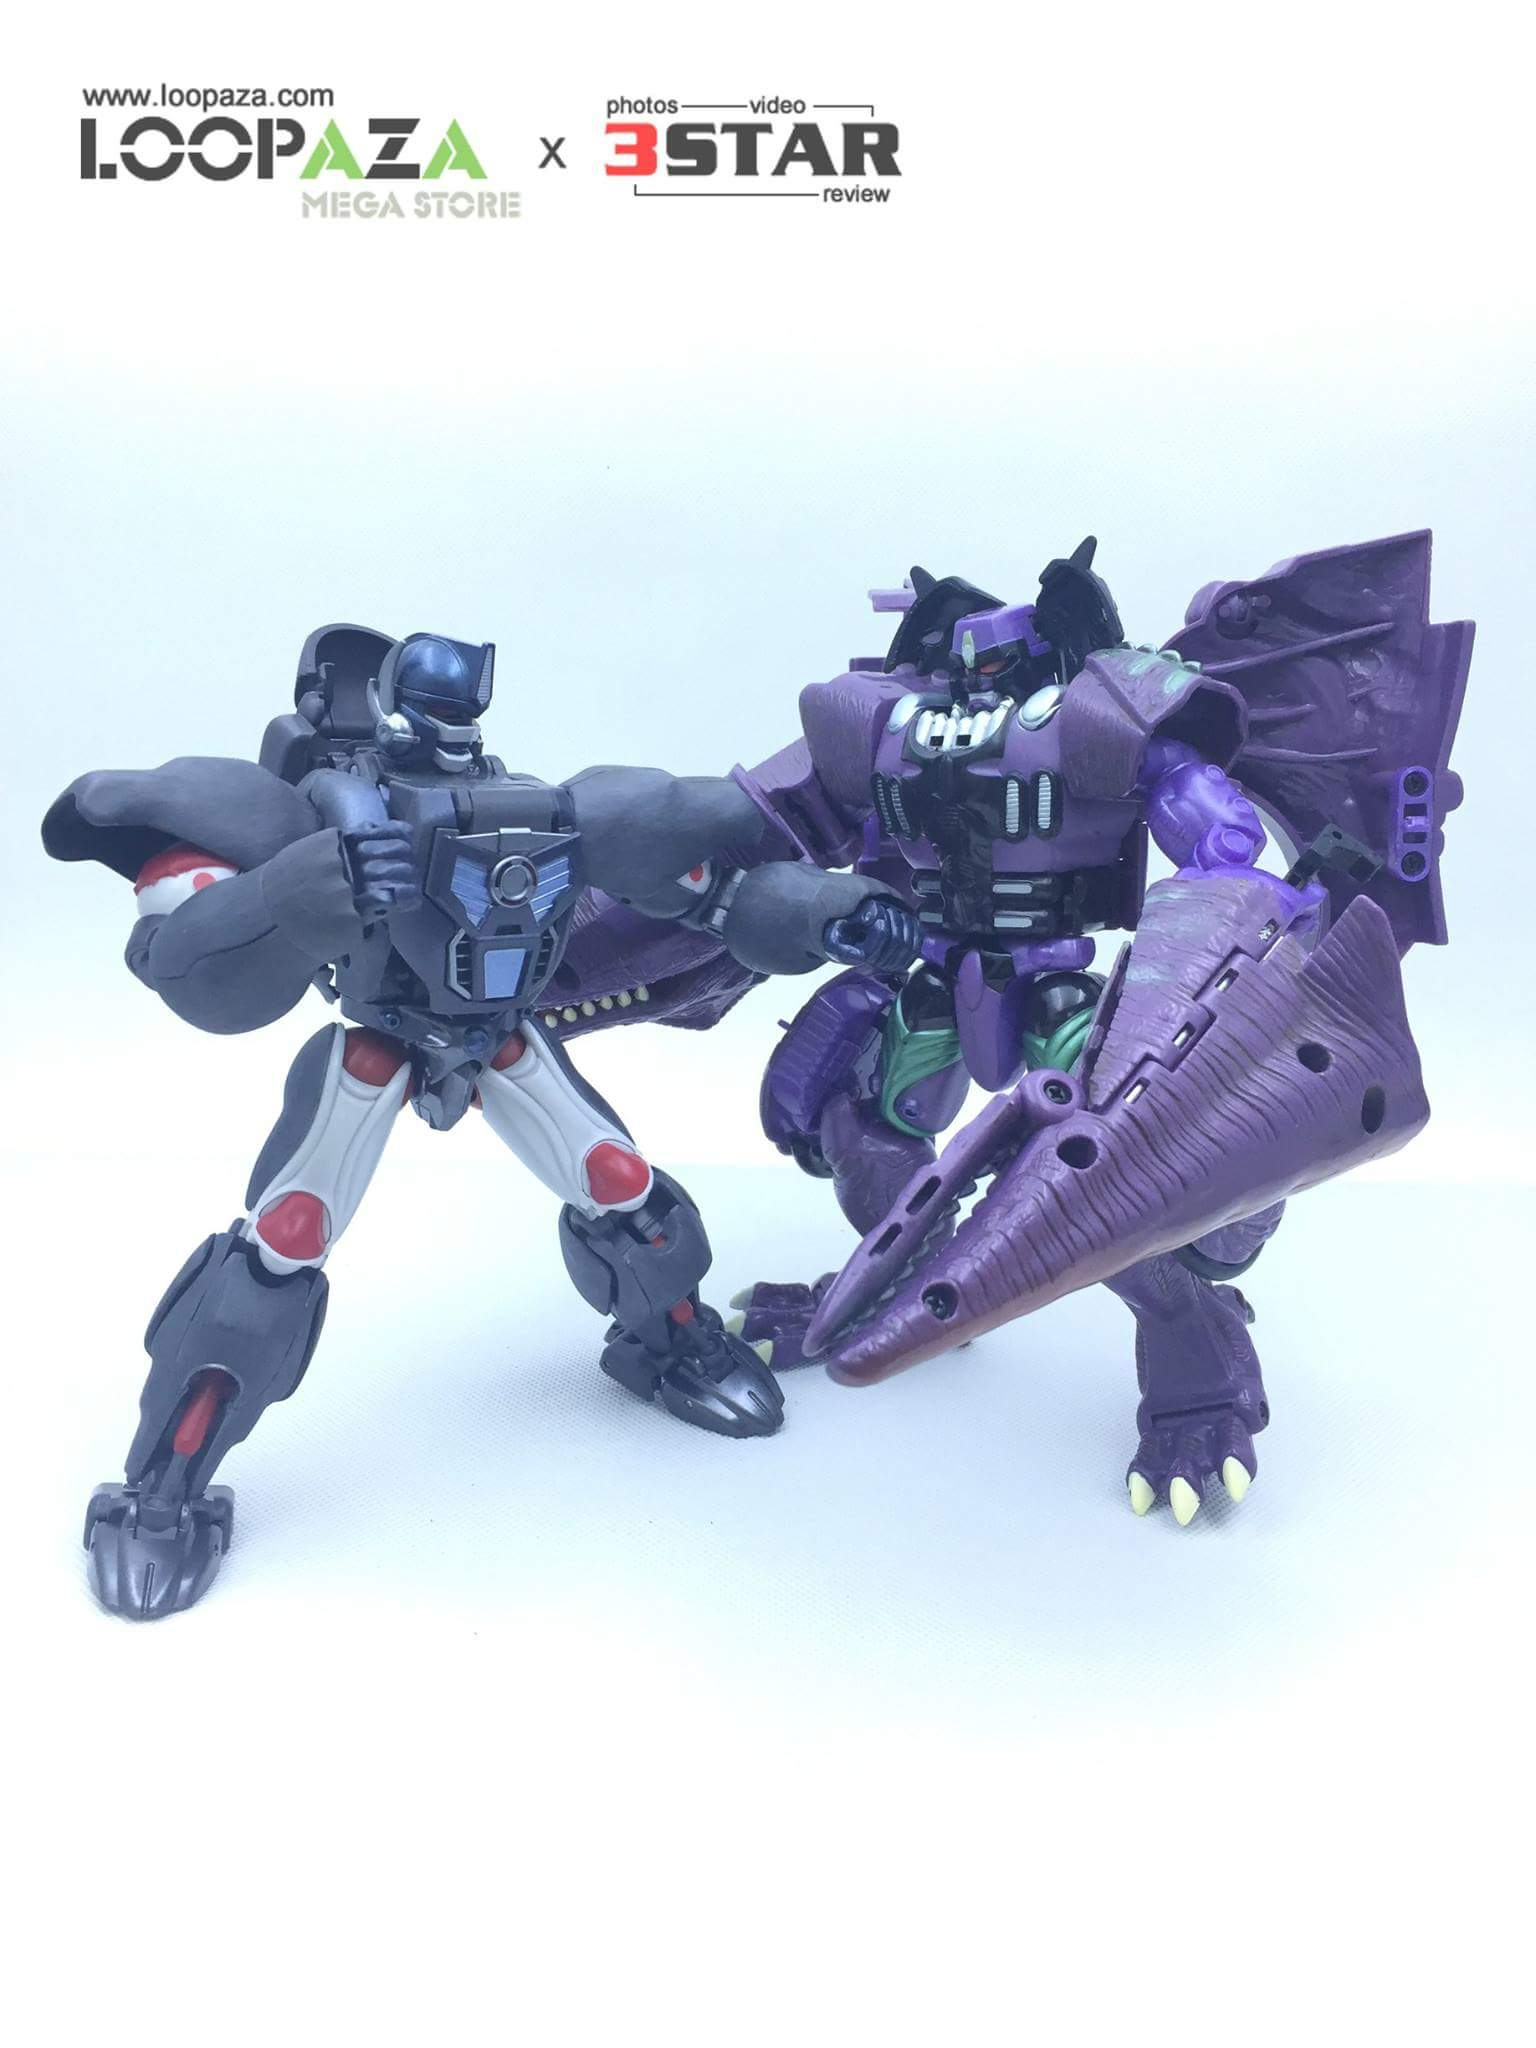 [Masterpiece] MP-32, MP-38 Optimus Primal et MP-38+ Burning Convoy (Beast Wars) - Page 3 UF6y3oBW